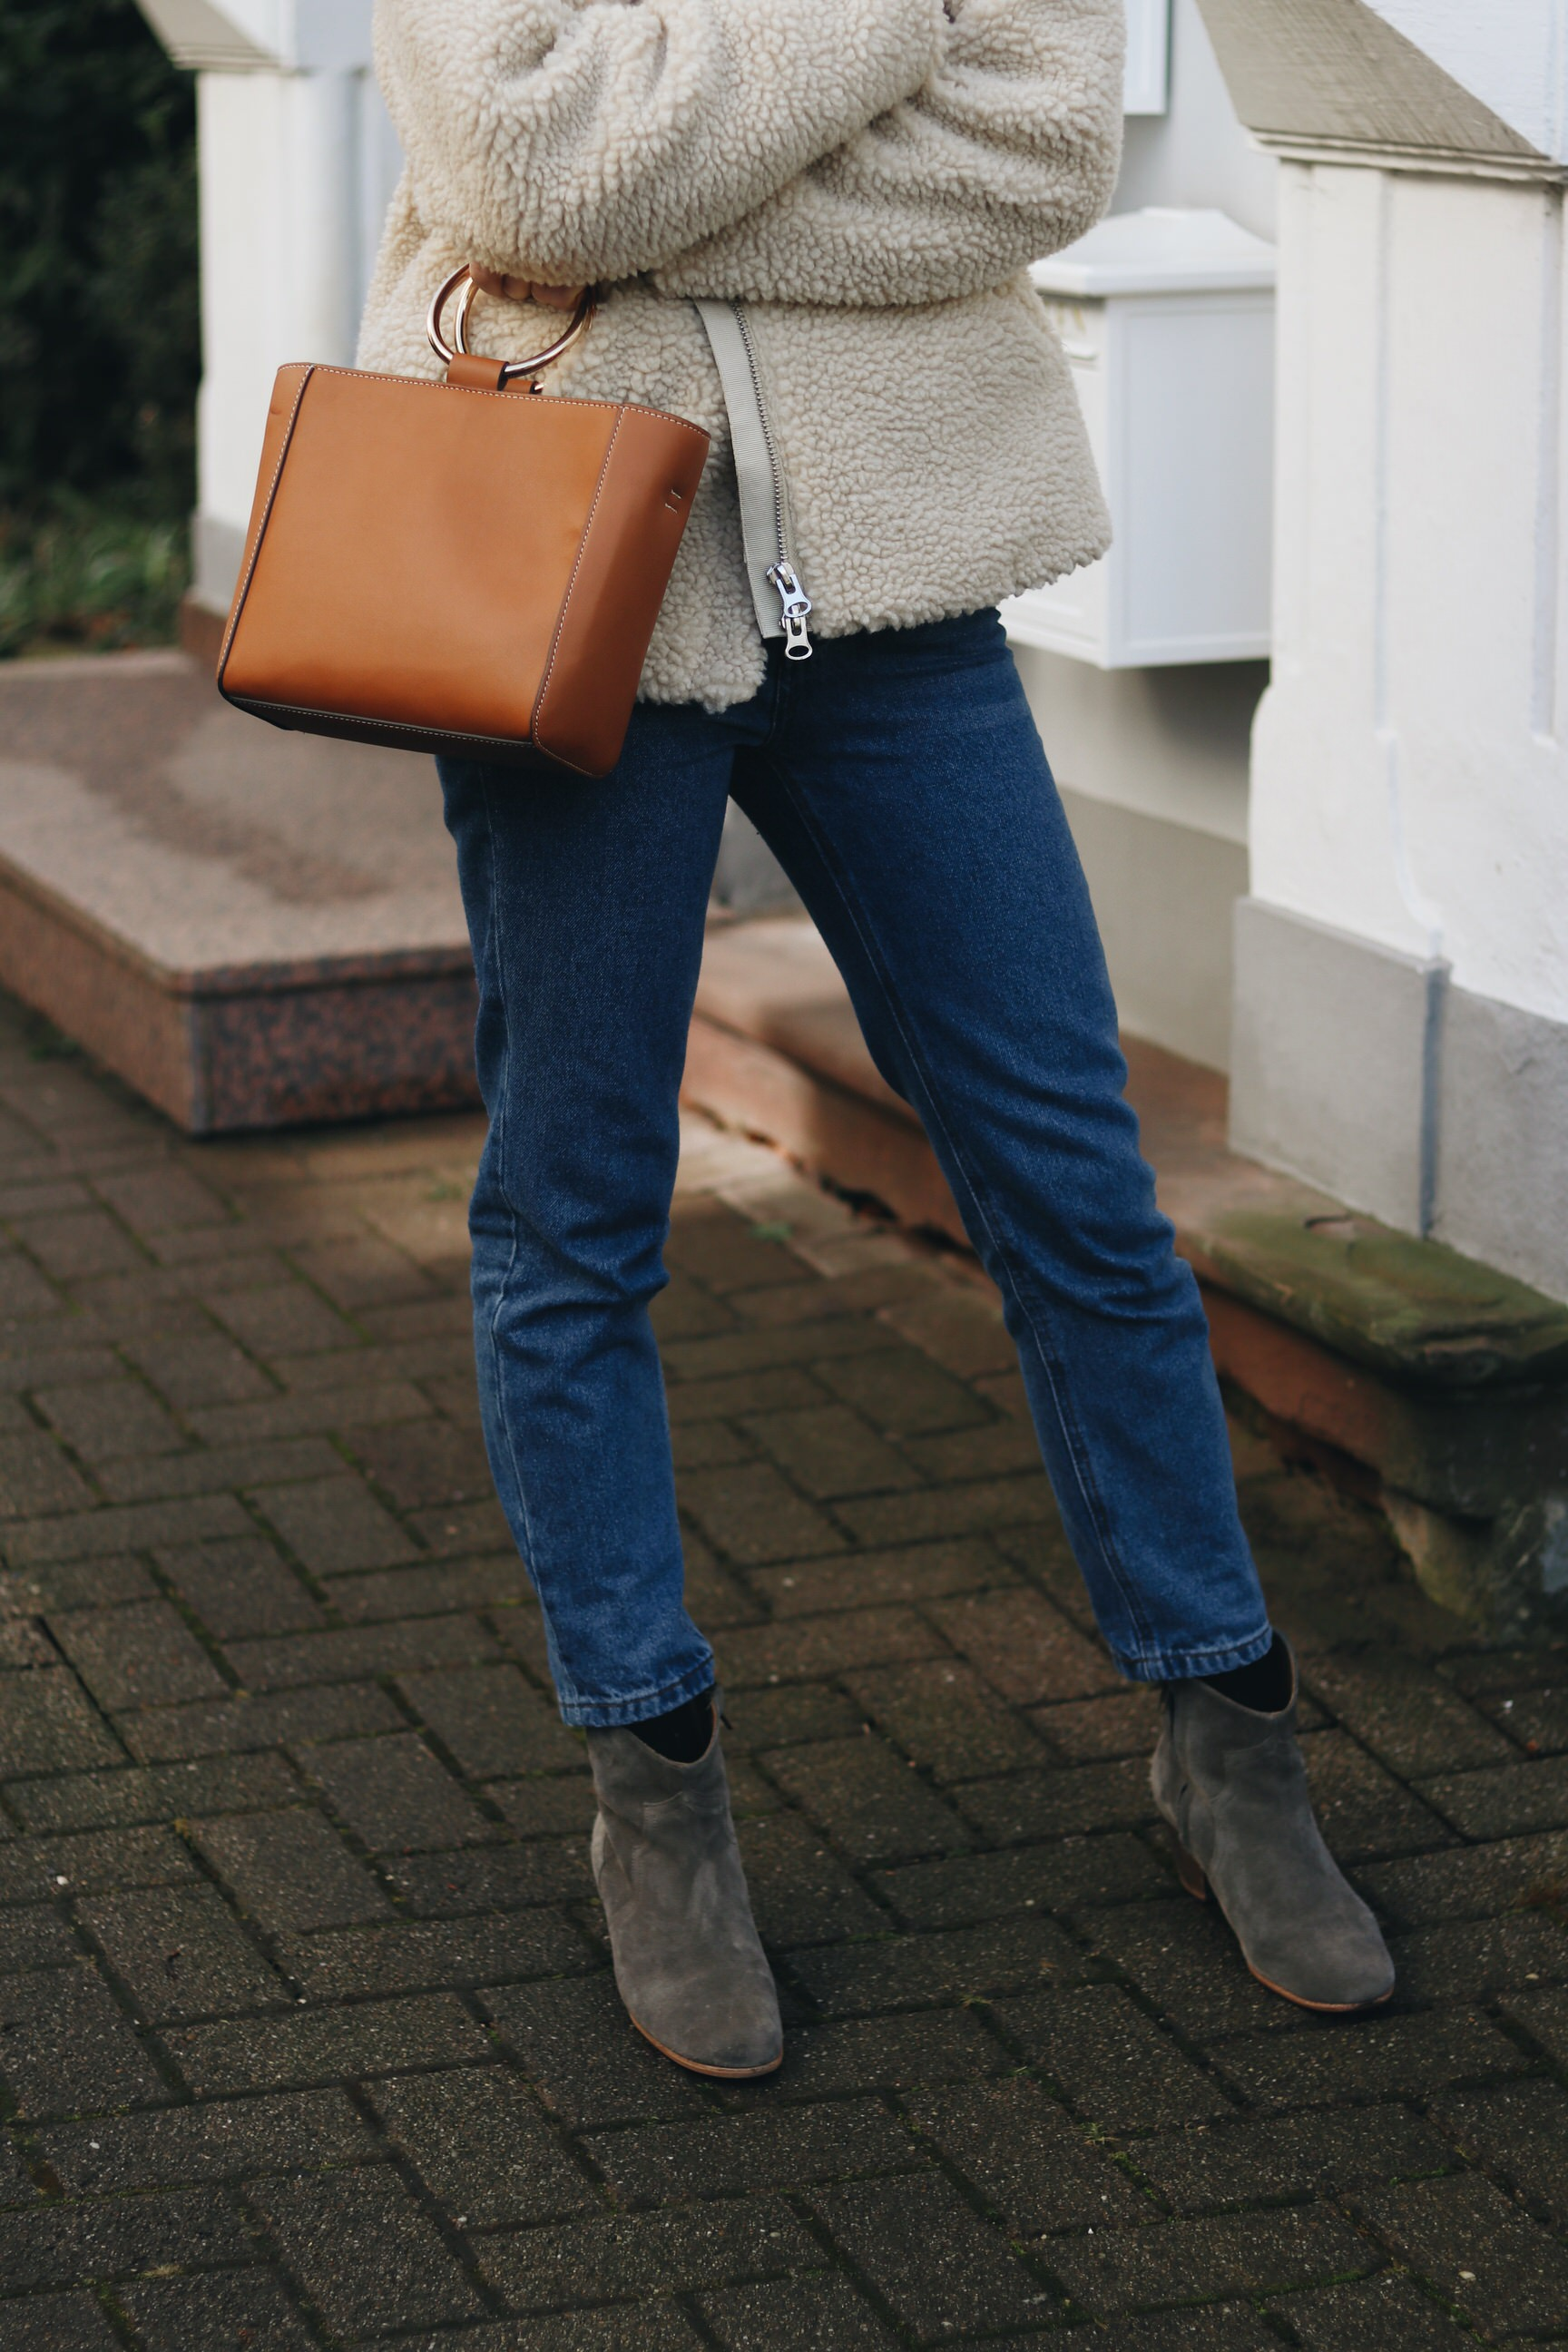 Ring Bag Henkeltasche Mom Jeans Isabel Marant Boots